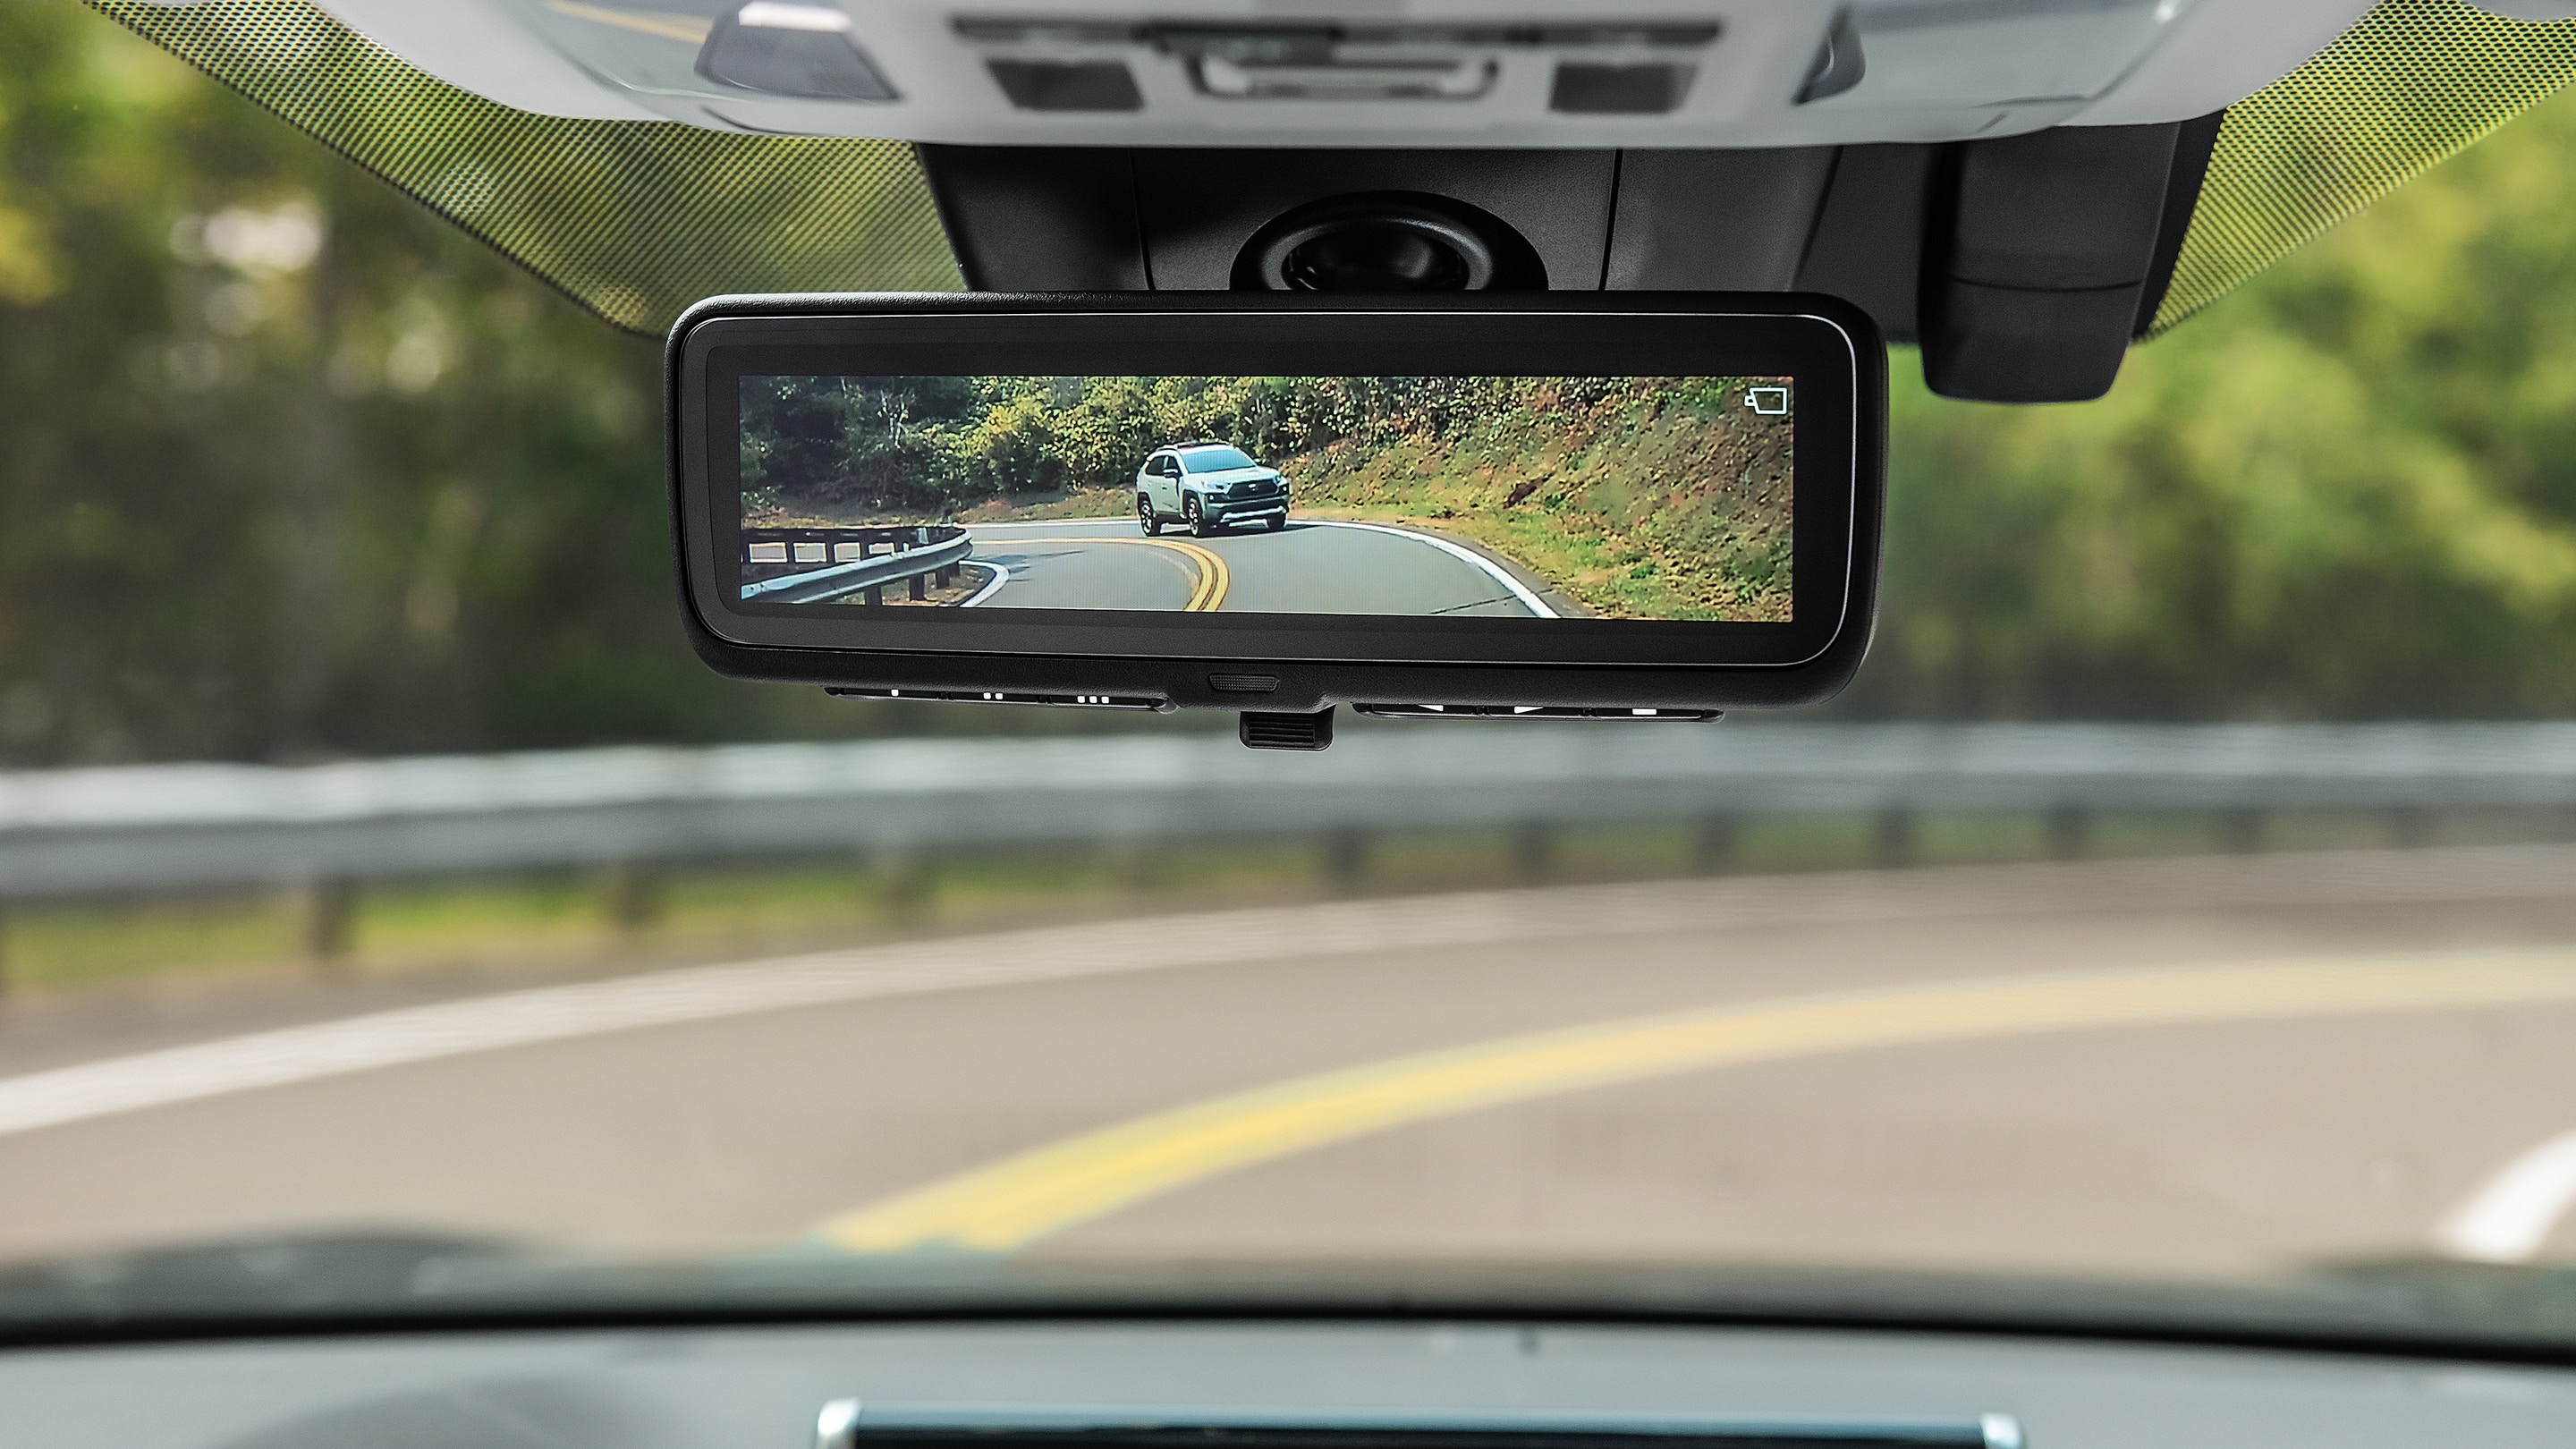 2019 Toyota RAV4 Rearview Mirror